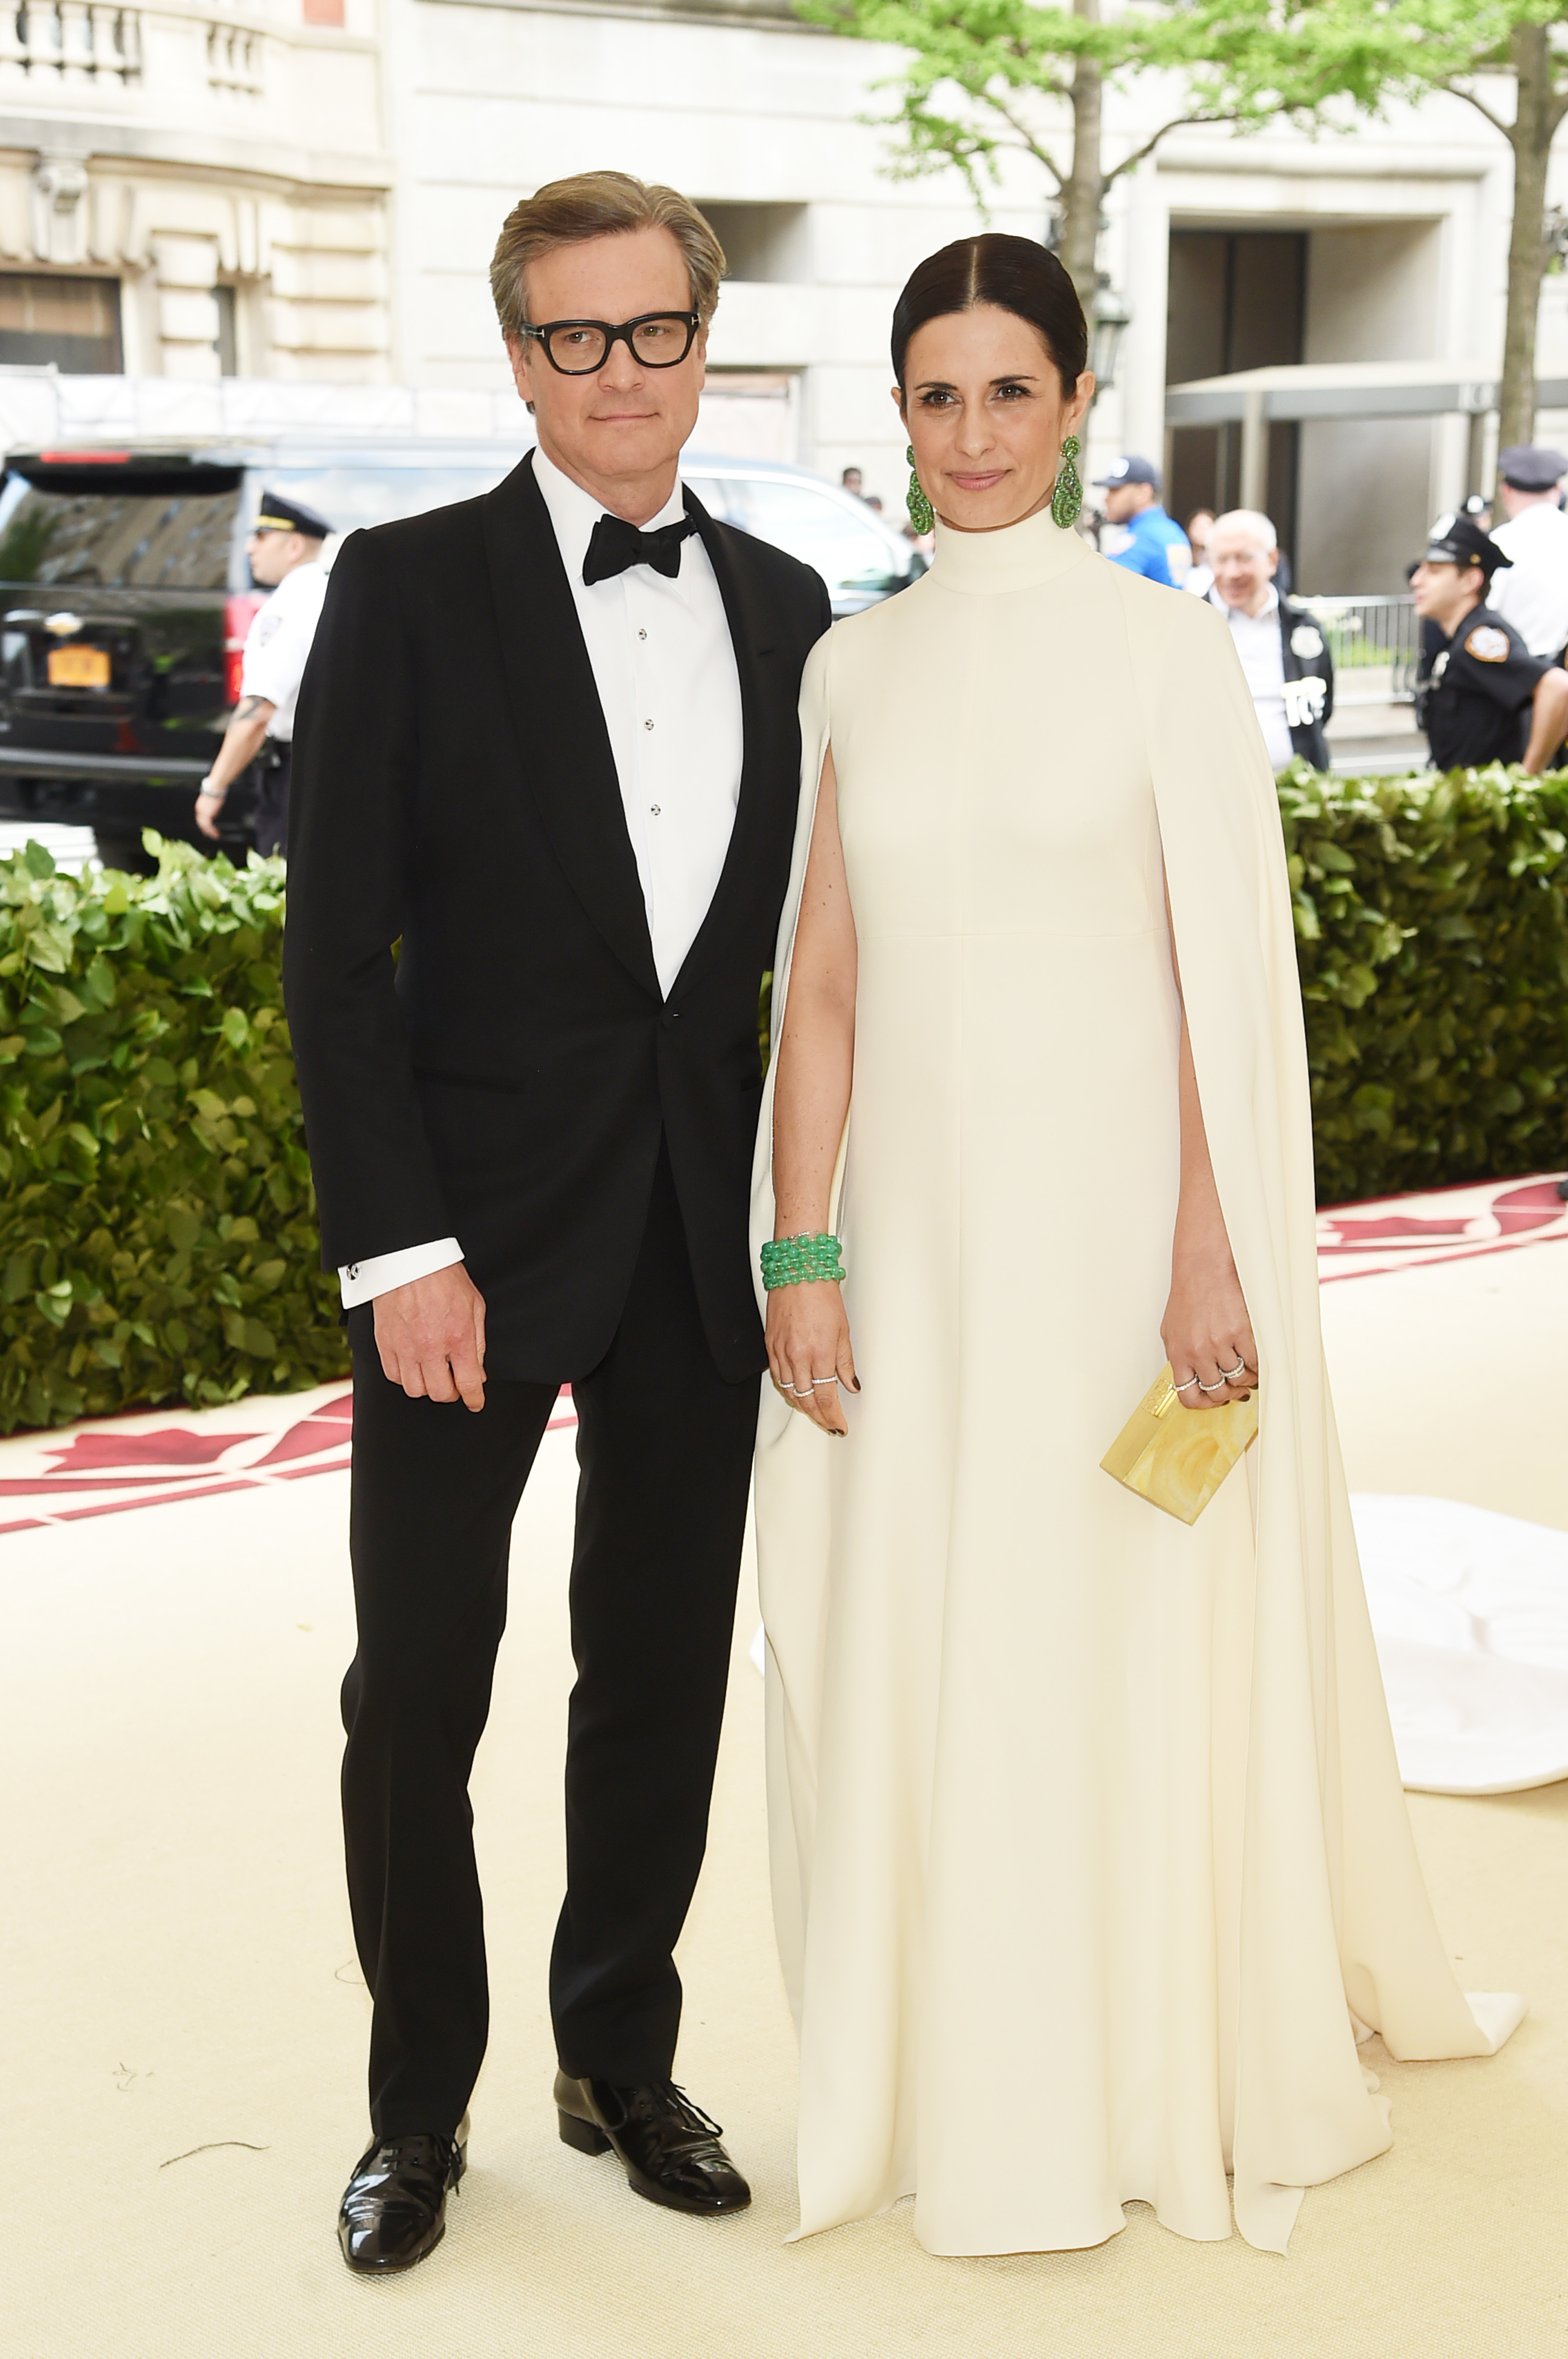 Colin Firth and  Livia Giuggioli attend The Metropolitan Museum of Art's Costume Institute Benefit celebrating the opening of Heavenly Bodies: Fashion and the Catholic Imagination in New York City on May 7, 2018.